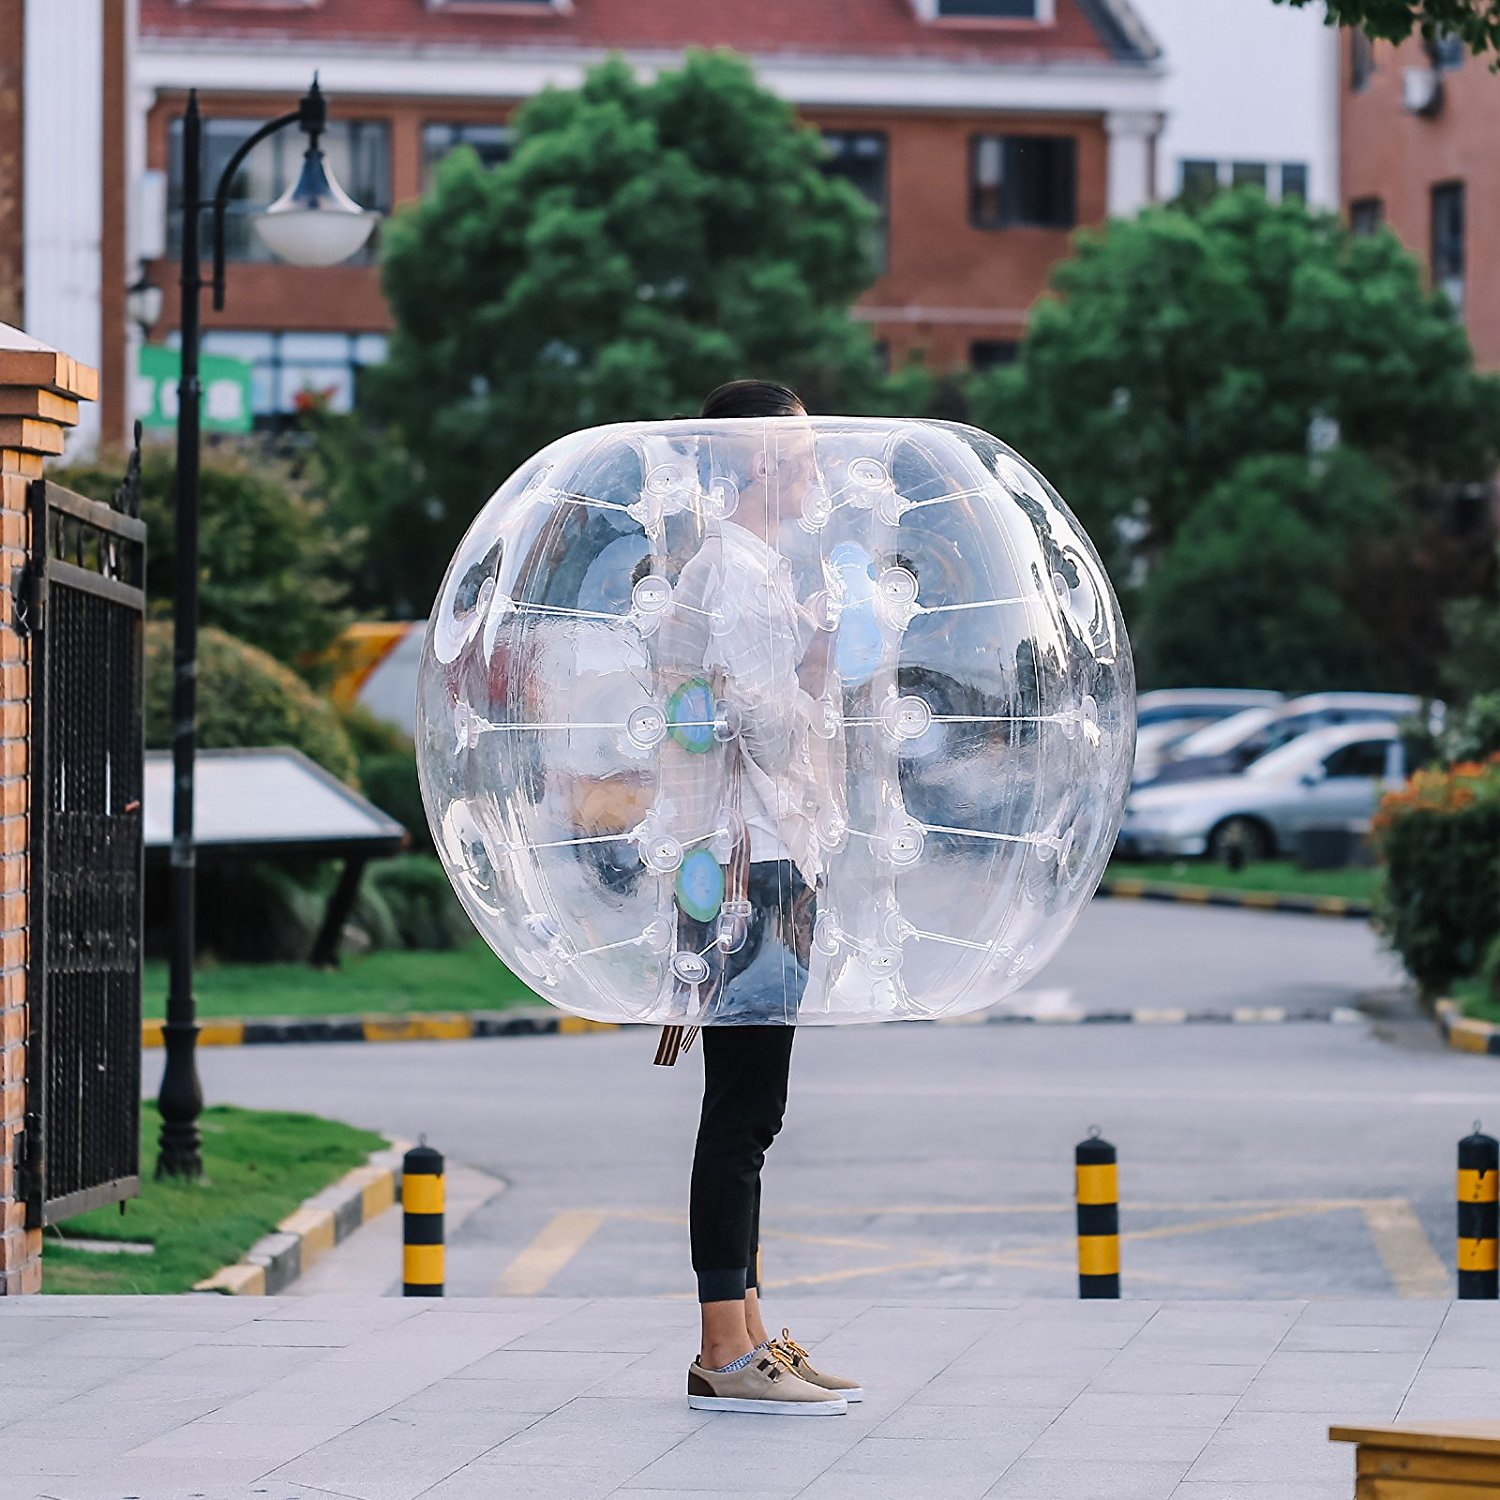 BestEquip Bumper Ball Human Knocker Bubble Soccer football 0.8mm PVC Transparent Material wearable Inflatable Body bumper Zorb Ball for Adults and Kids